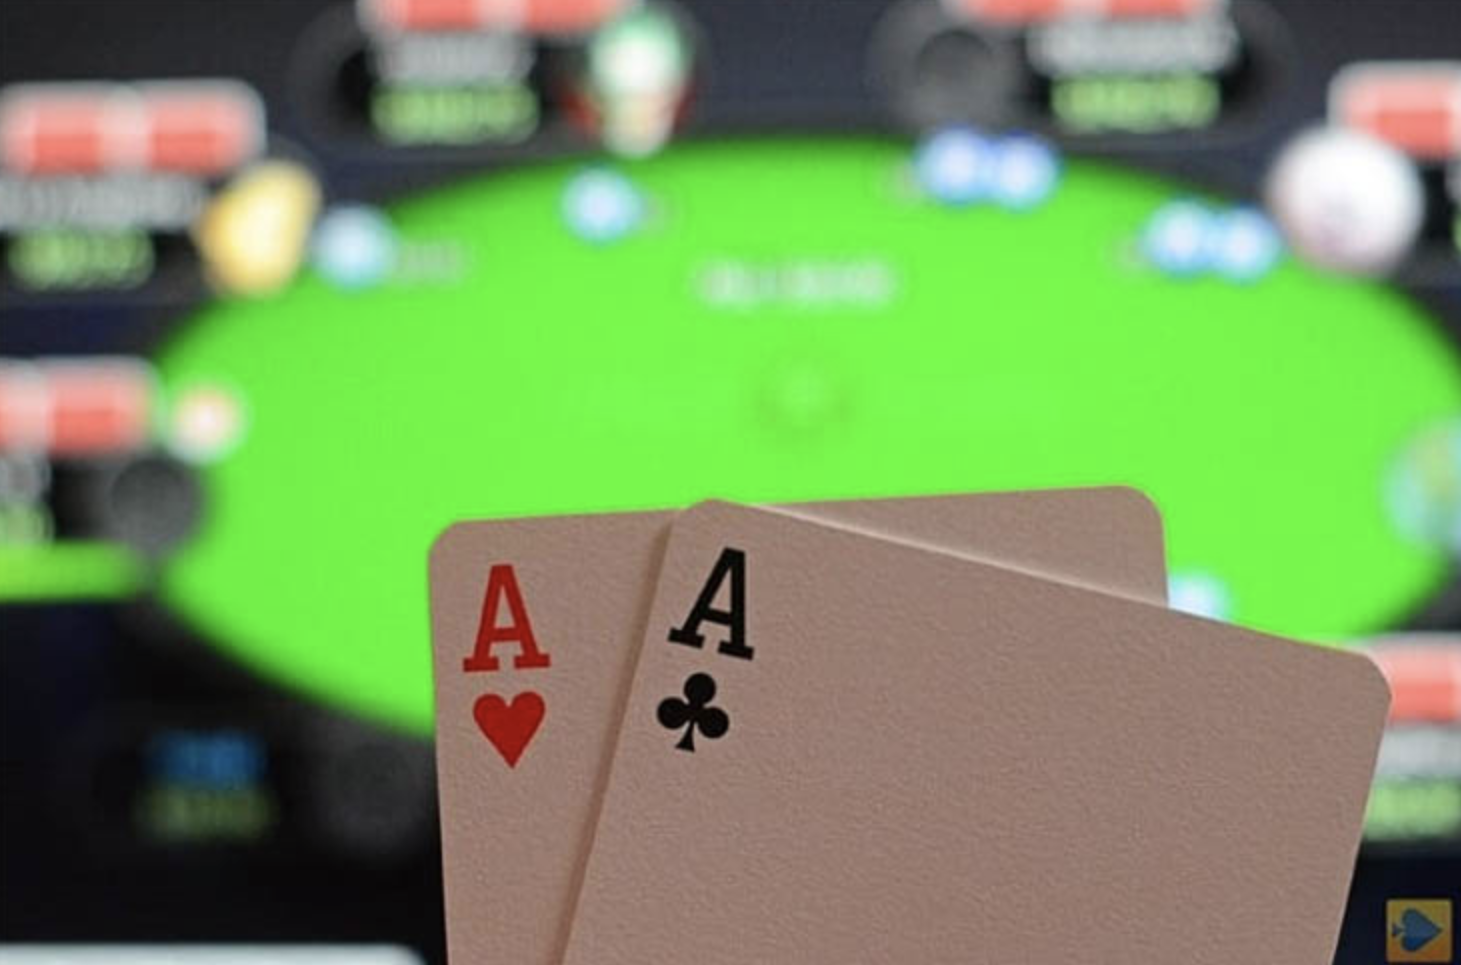 Online poker — When's the Money? - Towards Data Science